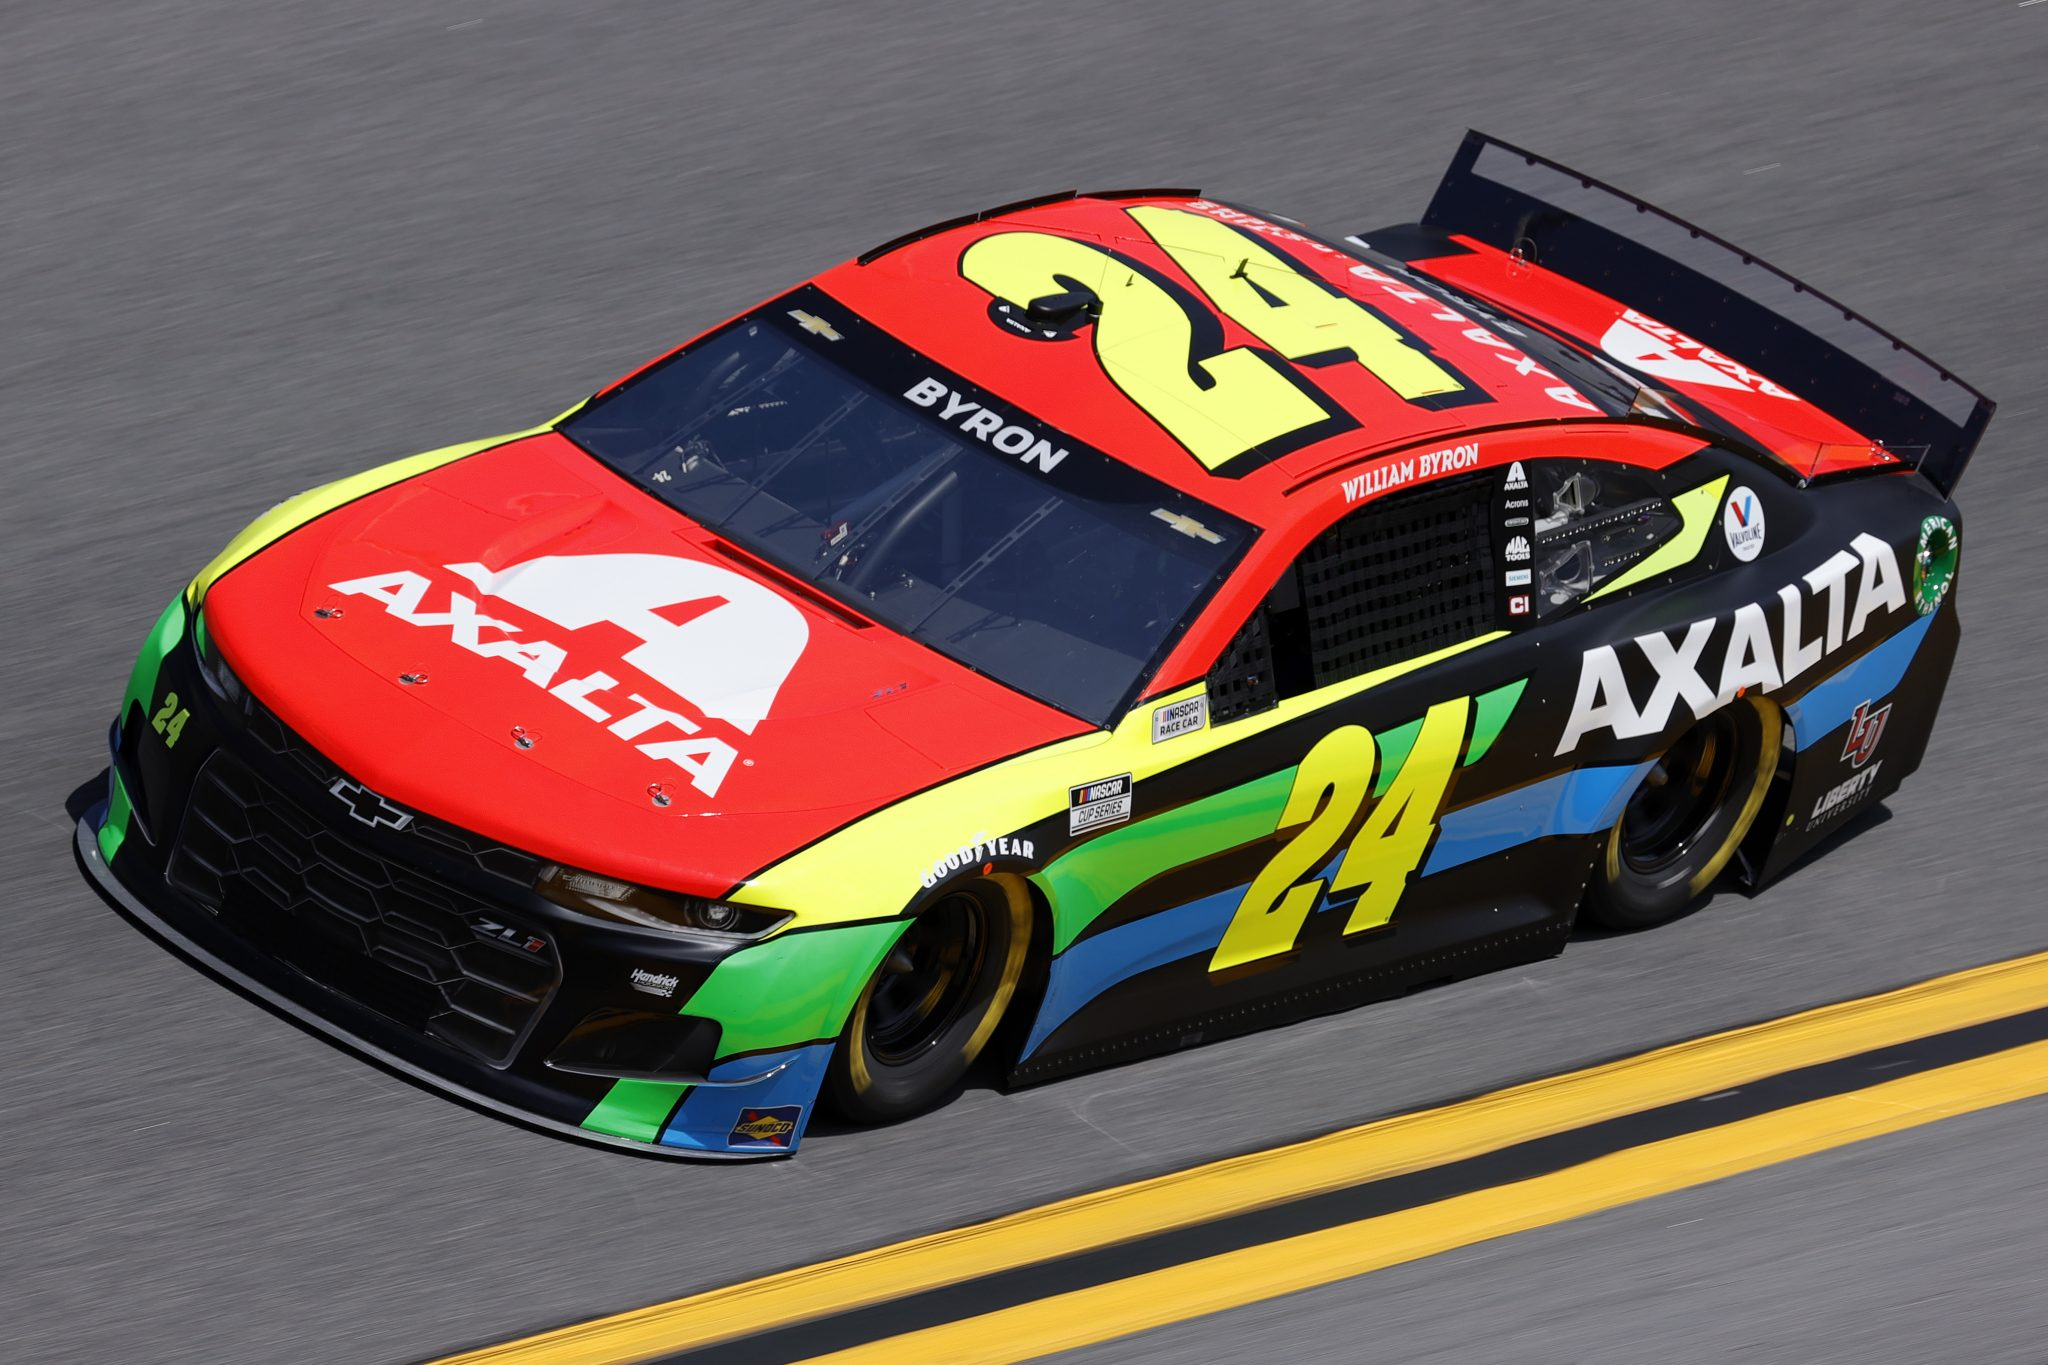 DAYTONA BEACH, FLORIDA - FEBRUARY 10: William Byron, driver of the #24 Axalta Chevrolet, drives during practice for the NASCAR Cup Series 63rd Annual Daytona 500 at Daytona International Speedway on February 10, 2021 in Daytona Beach, Florida. (Photo by Jared C. Tilton/Getty Images) | Getty Images